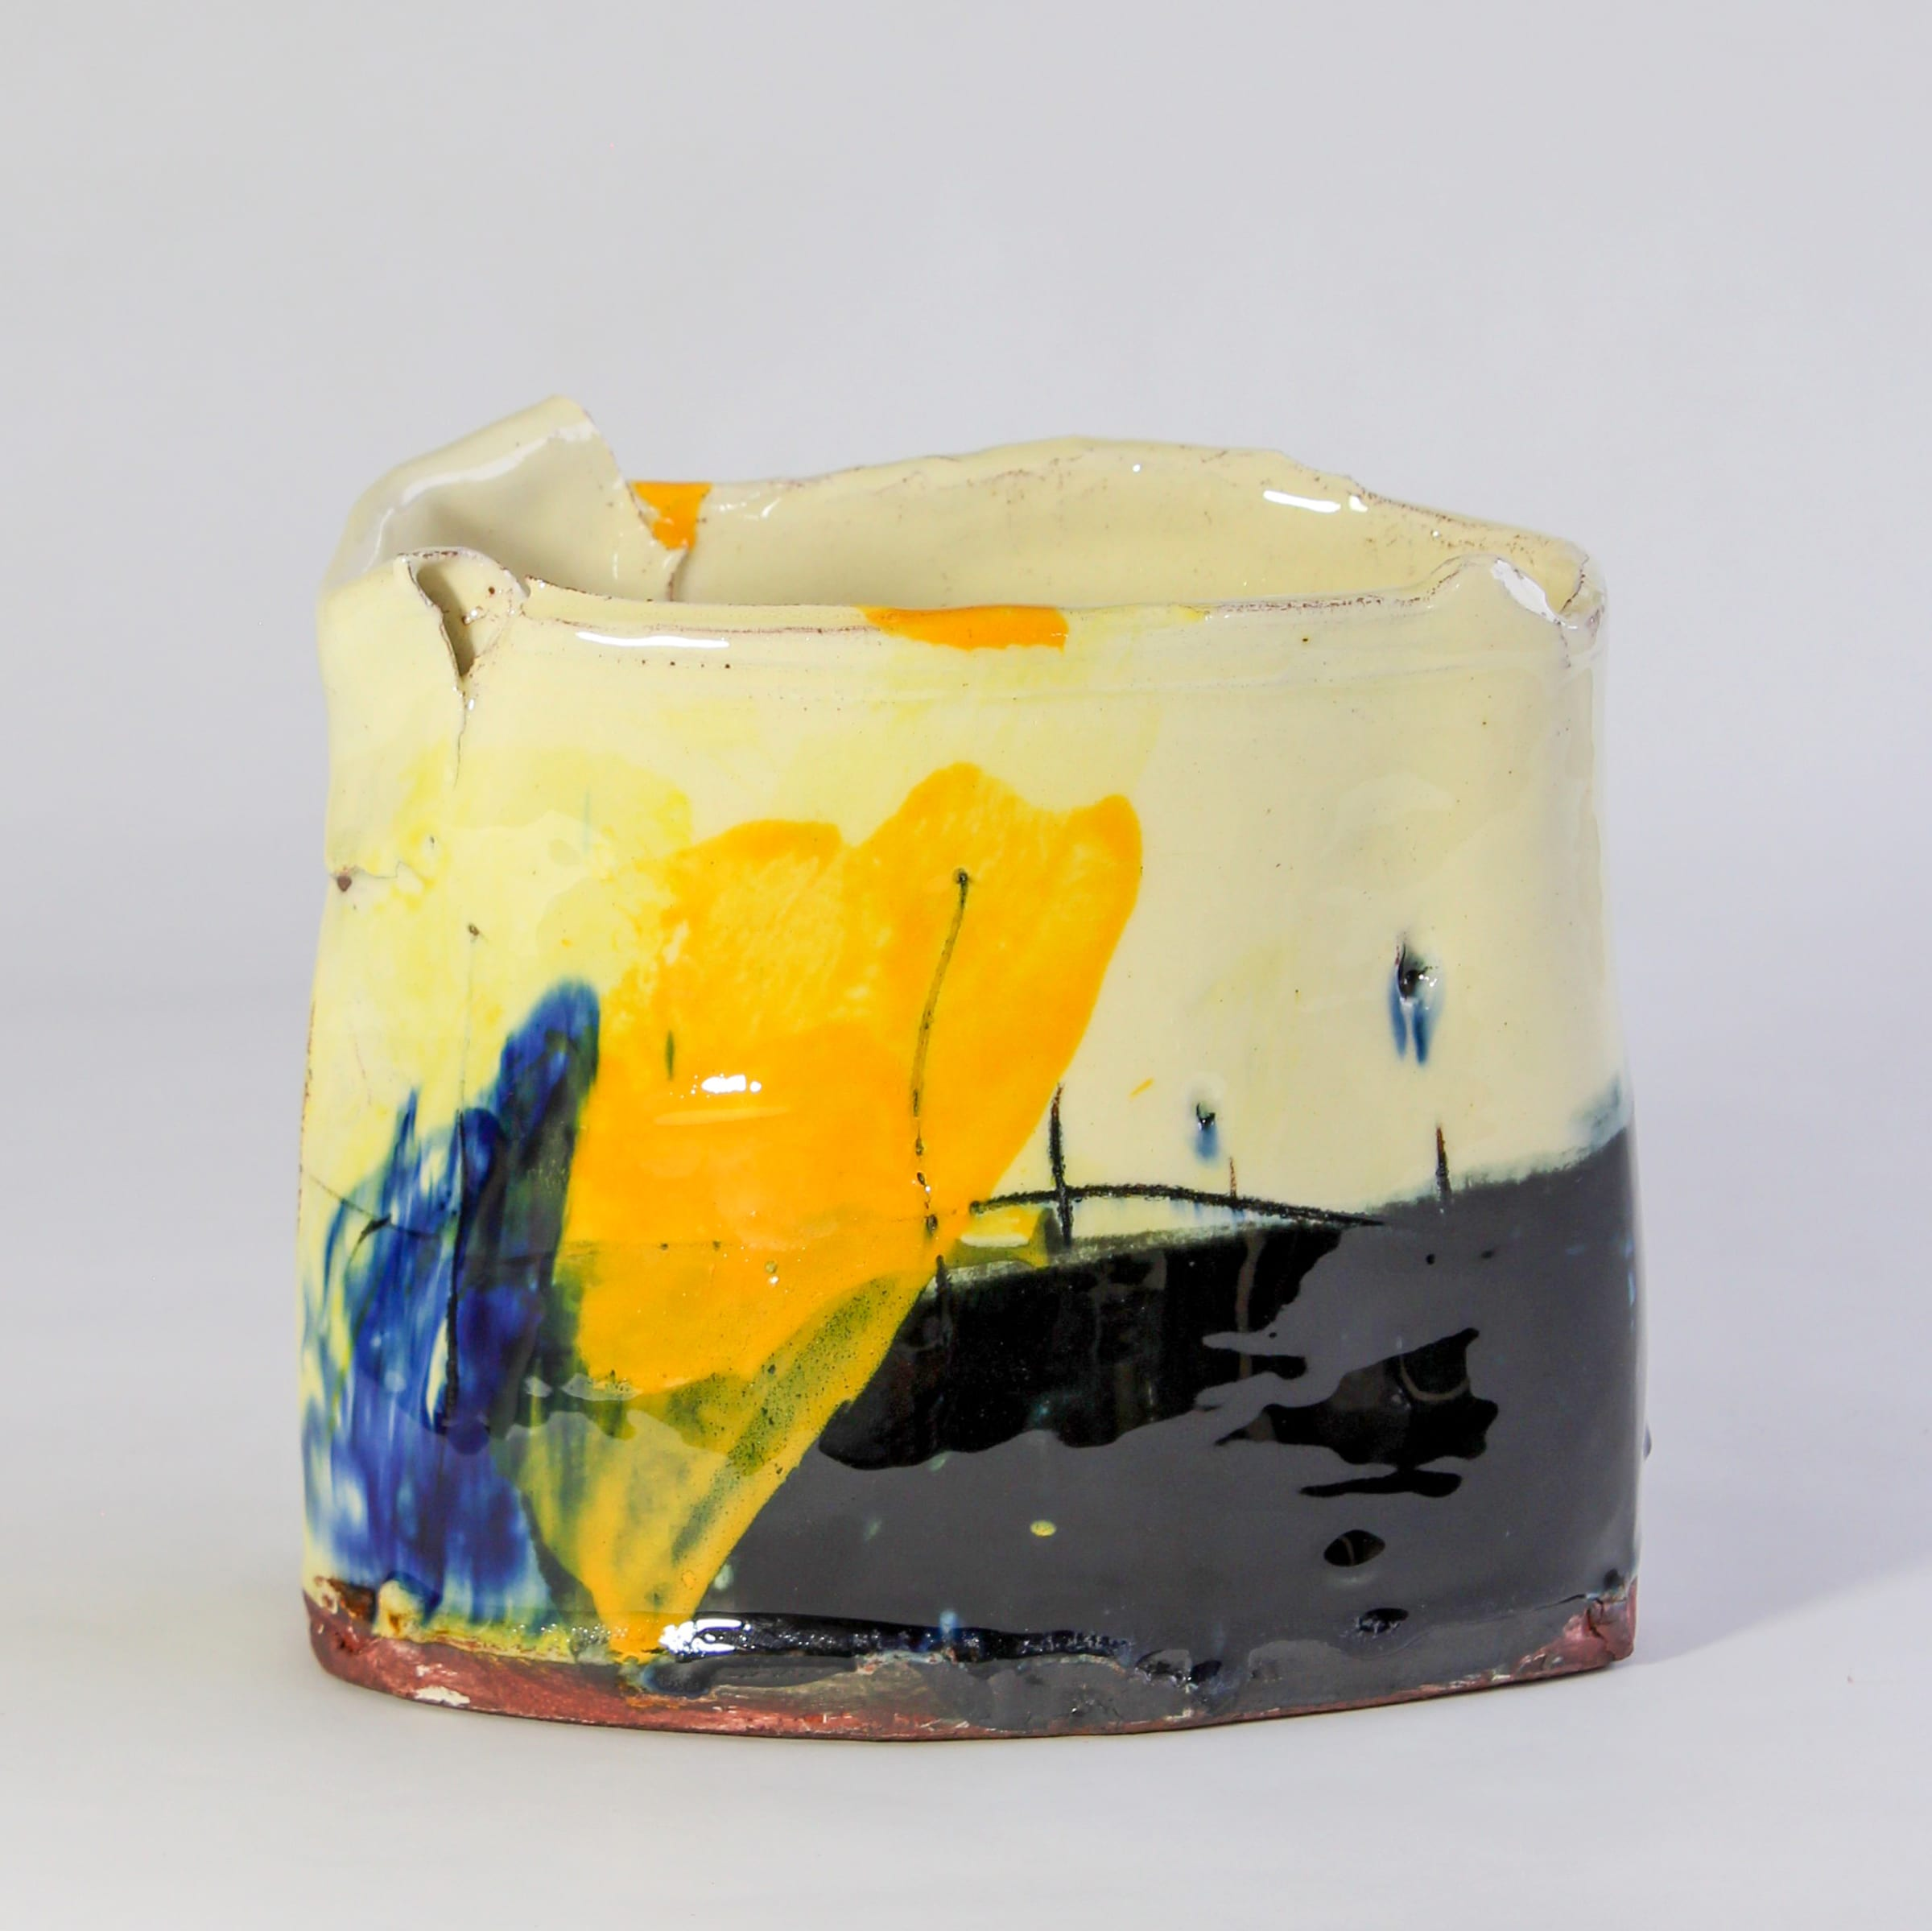 """<span class=""""link fancybox-details-link""""><a href=""""/artists/34-barry-stedman/works/7819-barry-stedman-thrown-altered-vessel-2021/"""">View Detail Page</a></span><div class=""""artist""""><strong>Barry Stedman</strong></div> <div class=""""title""""><em>Thrown altered Vessel </em>, 2021</div> <div class=""""medium"""">thrown and altered earthenware, decorated with slips</div> <div class=""""dimensions"""">14 x 15 x 10 cm</div><div class=""""price"""">£231.00</div><div class=""""copyright_line"""">Own Art: £23.10 x 10 Months, 0% APR</div>"""